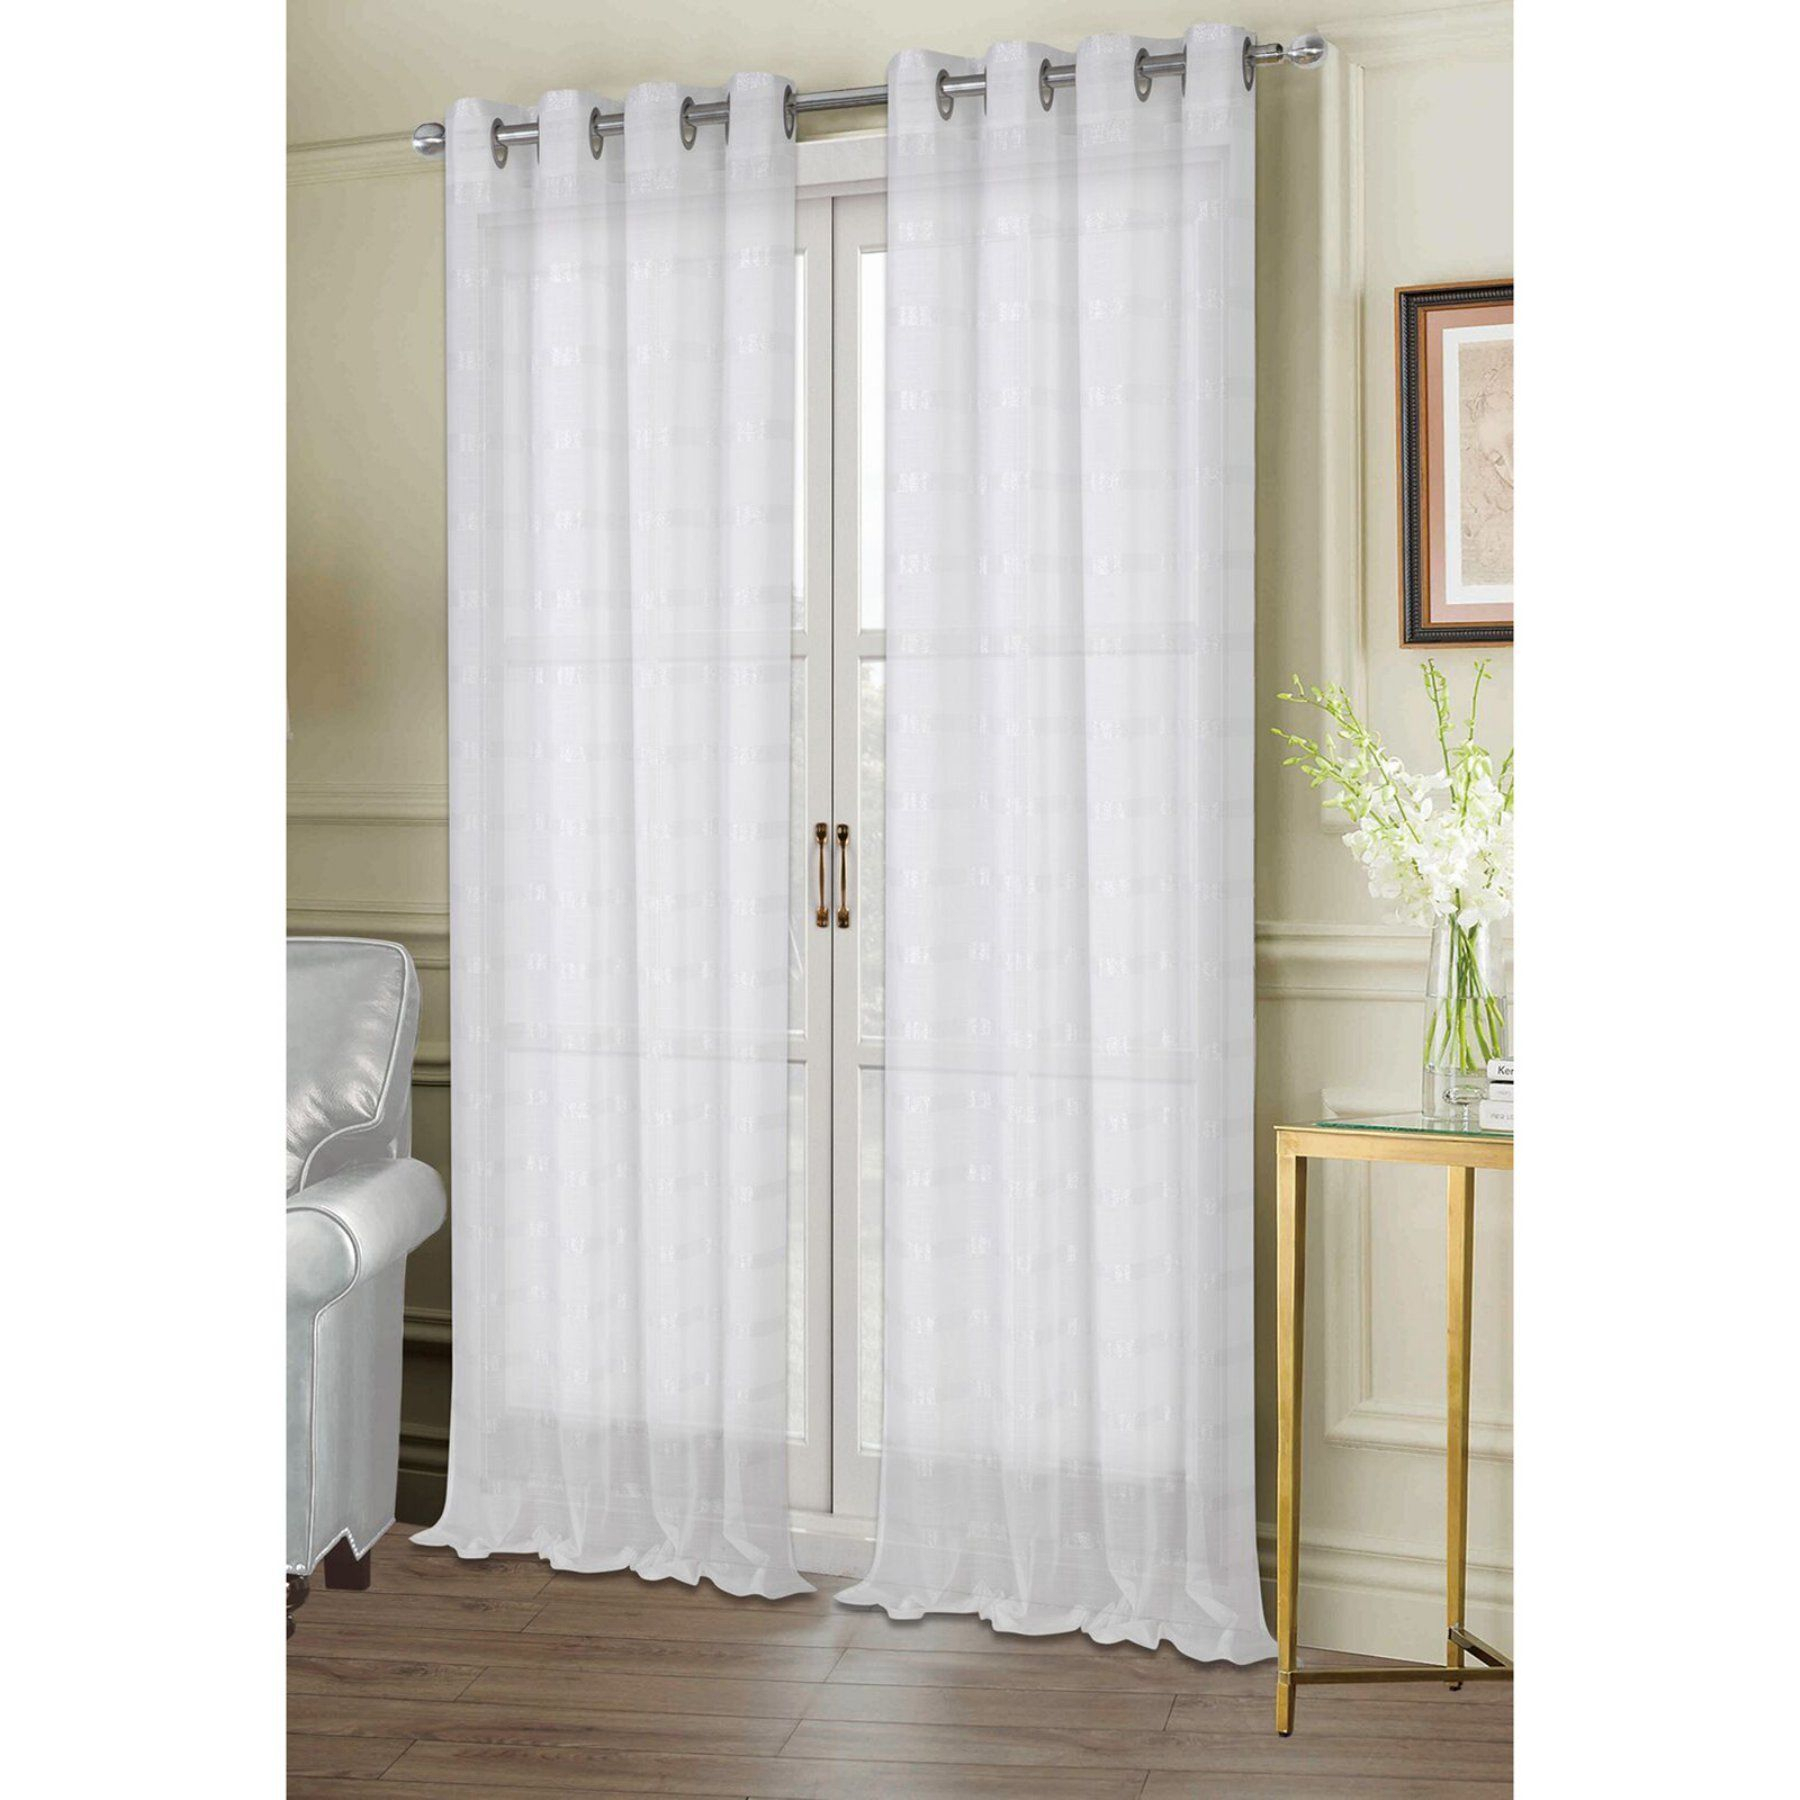 Dainty Home Metallica Grommet Sheer Panel Pair – White Intended For Signature White Double Layer Sheer Curtain Panels (View 19 of 30)